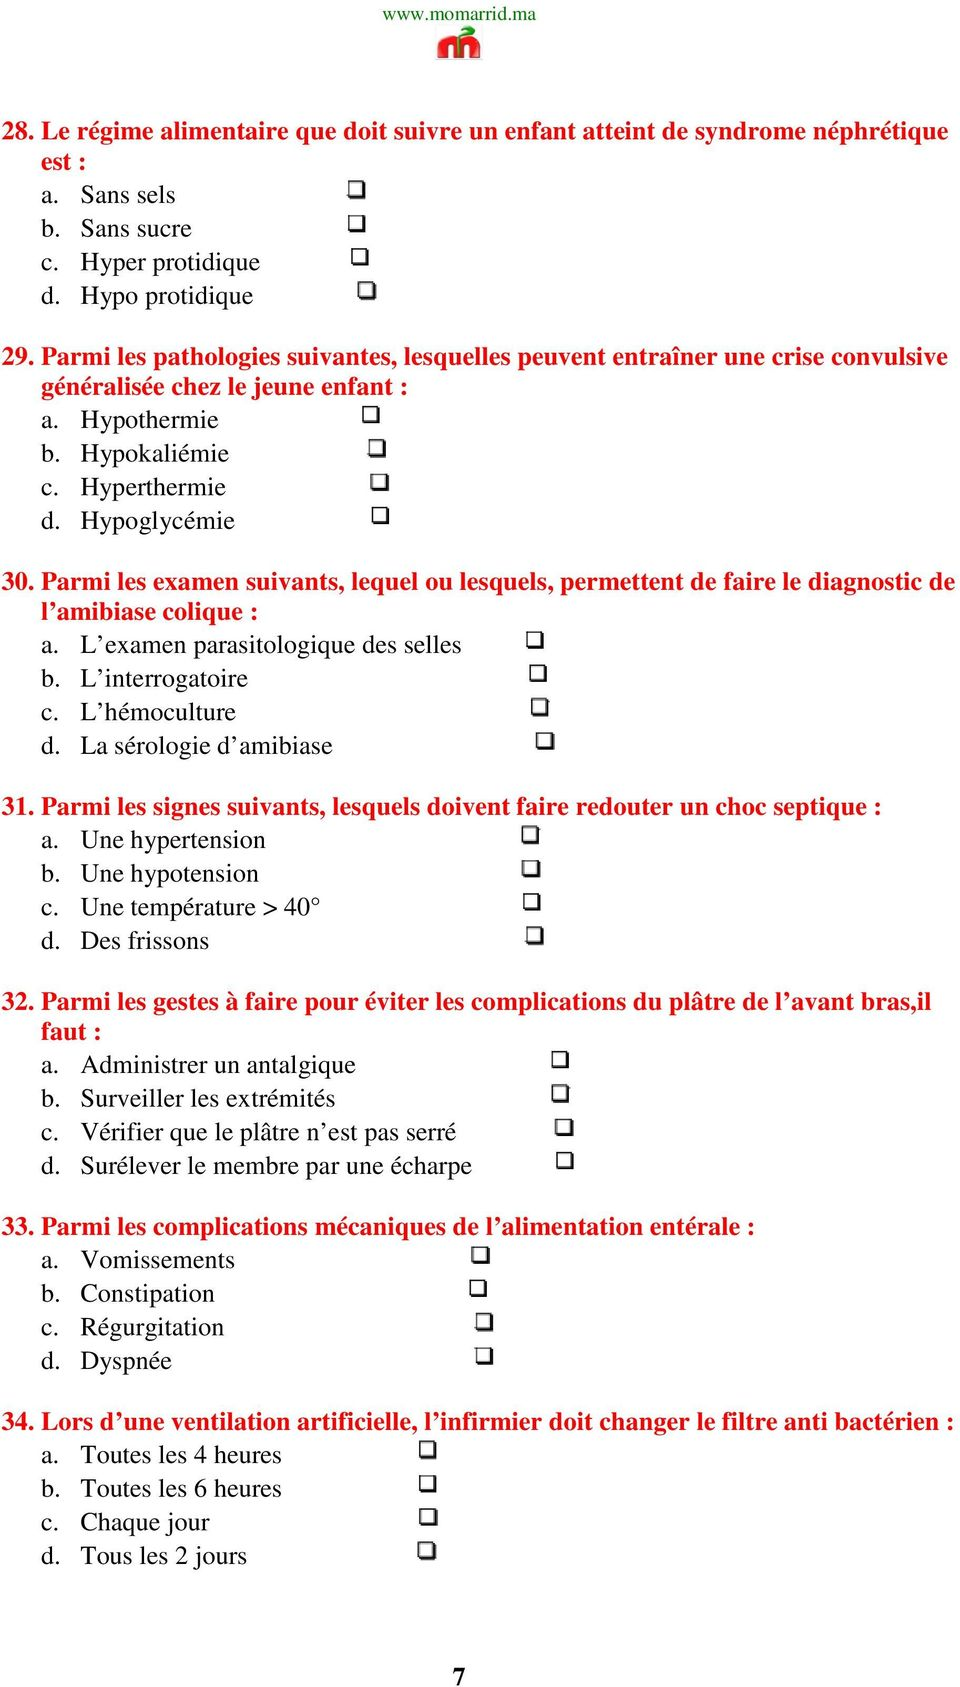 signe hypotension infirmier